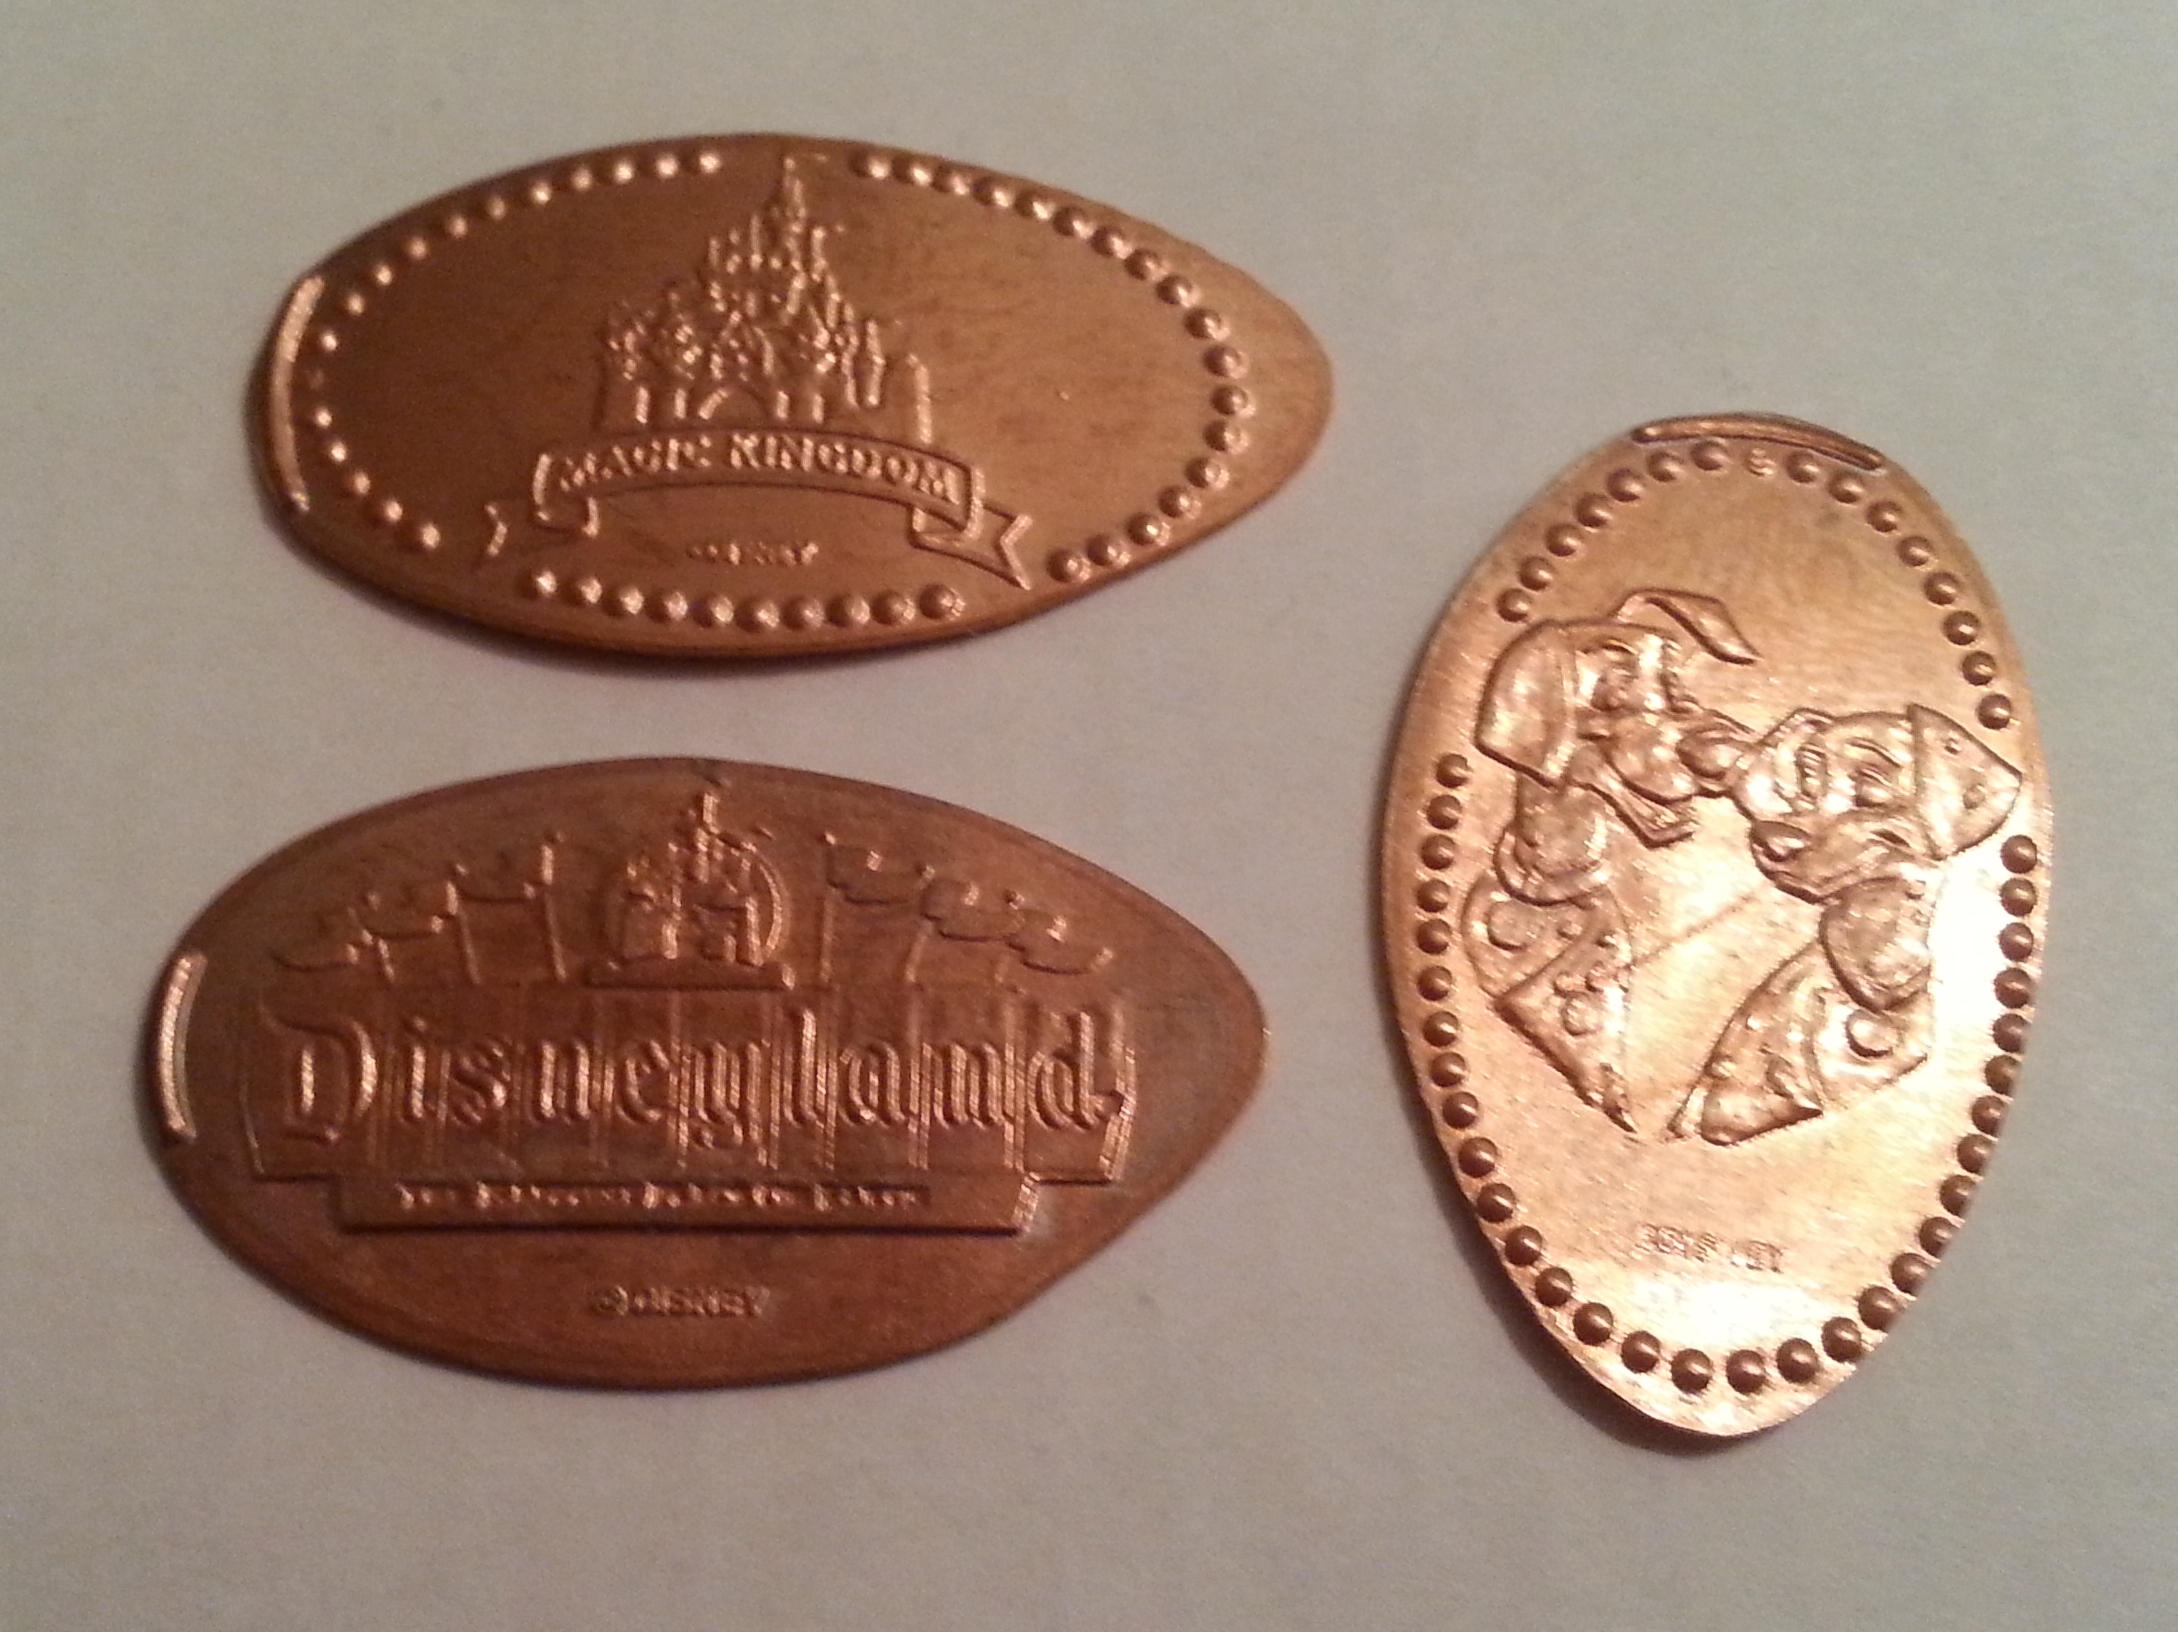 Thrifty Thursday: Disney World Pressed Coins